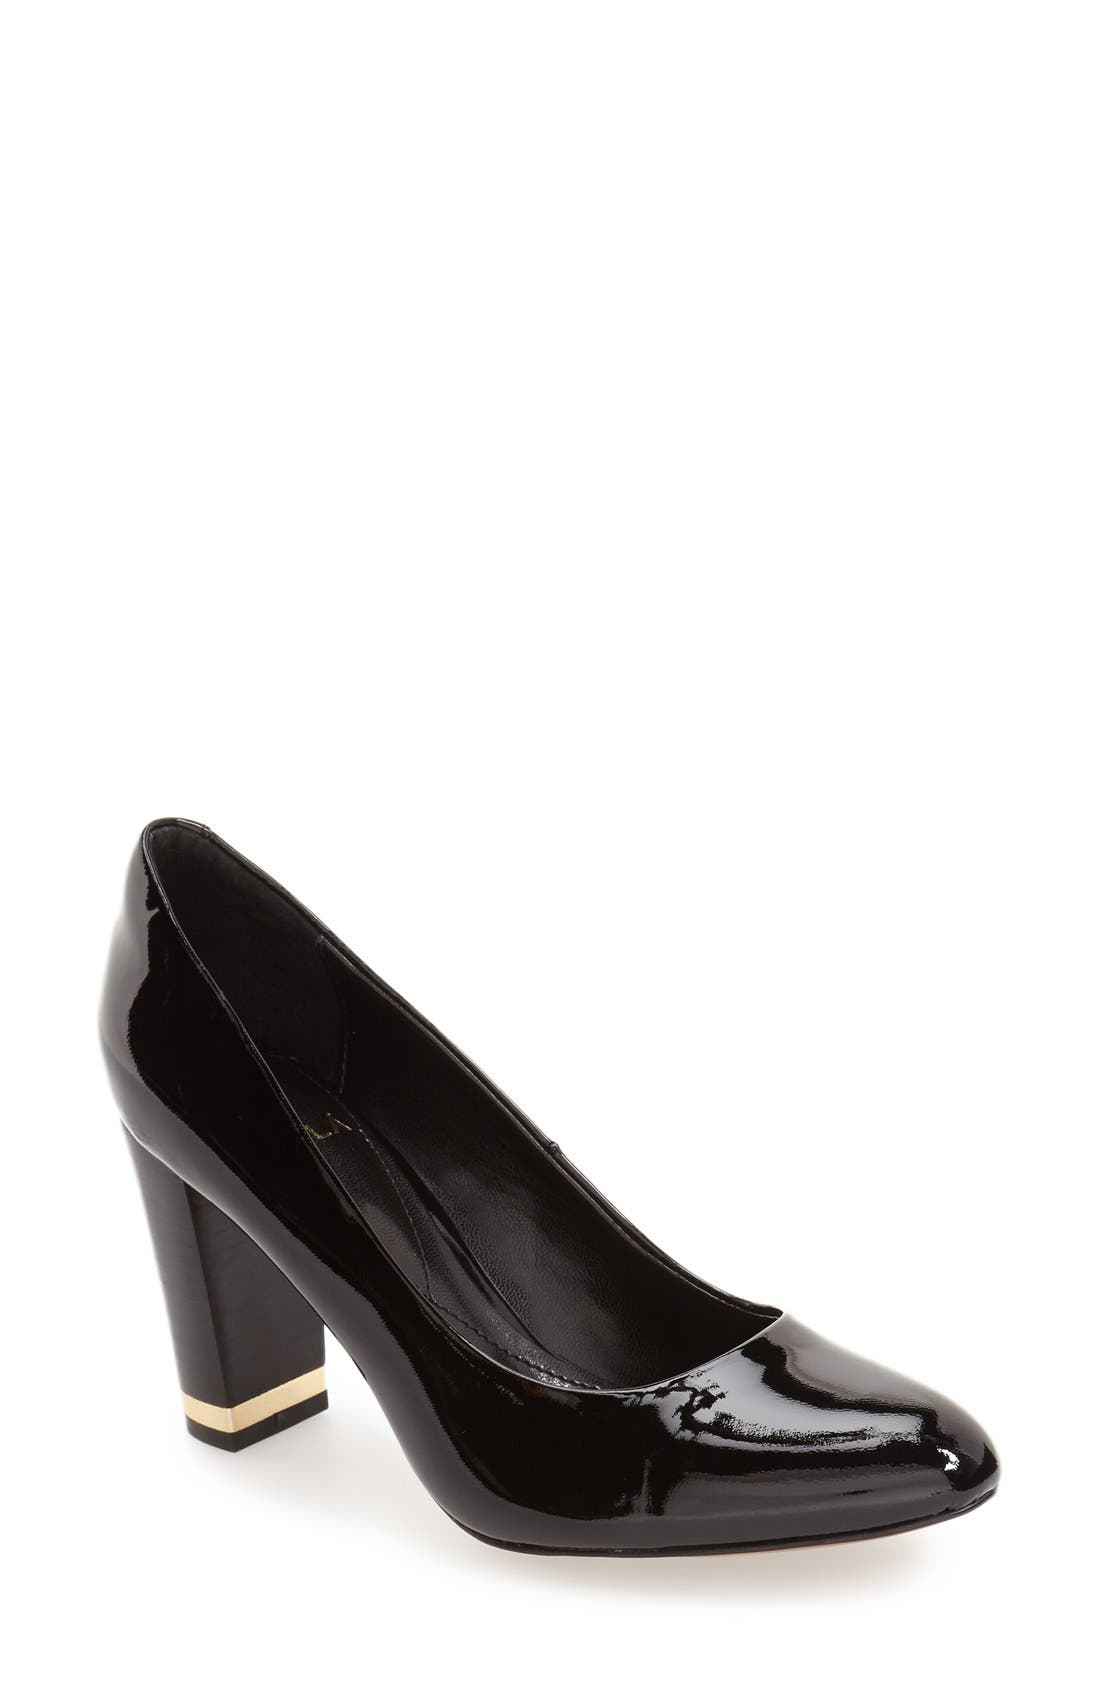 'Eleni II' Block Heel Pump,                         Main,                         color, Black Patent